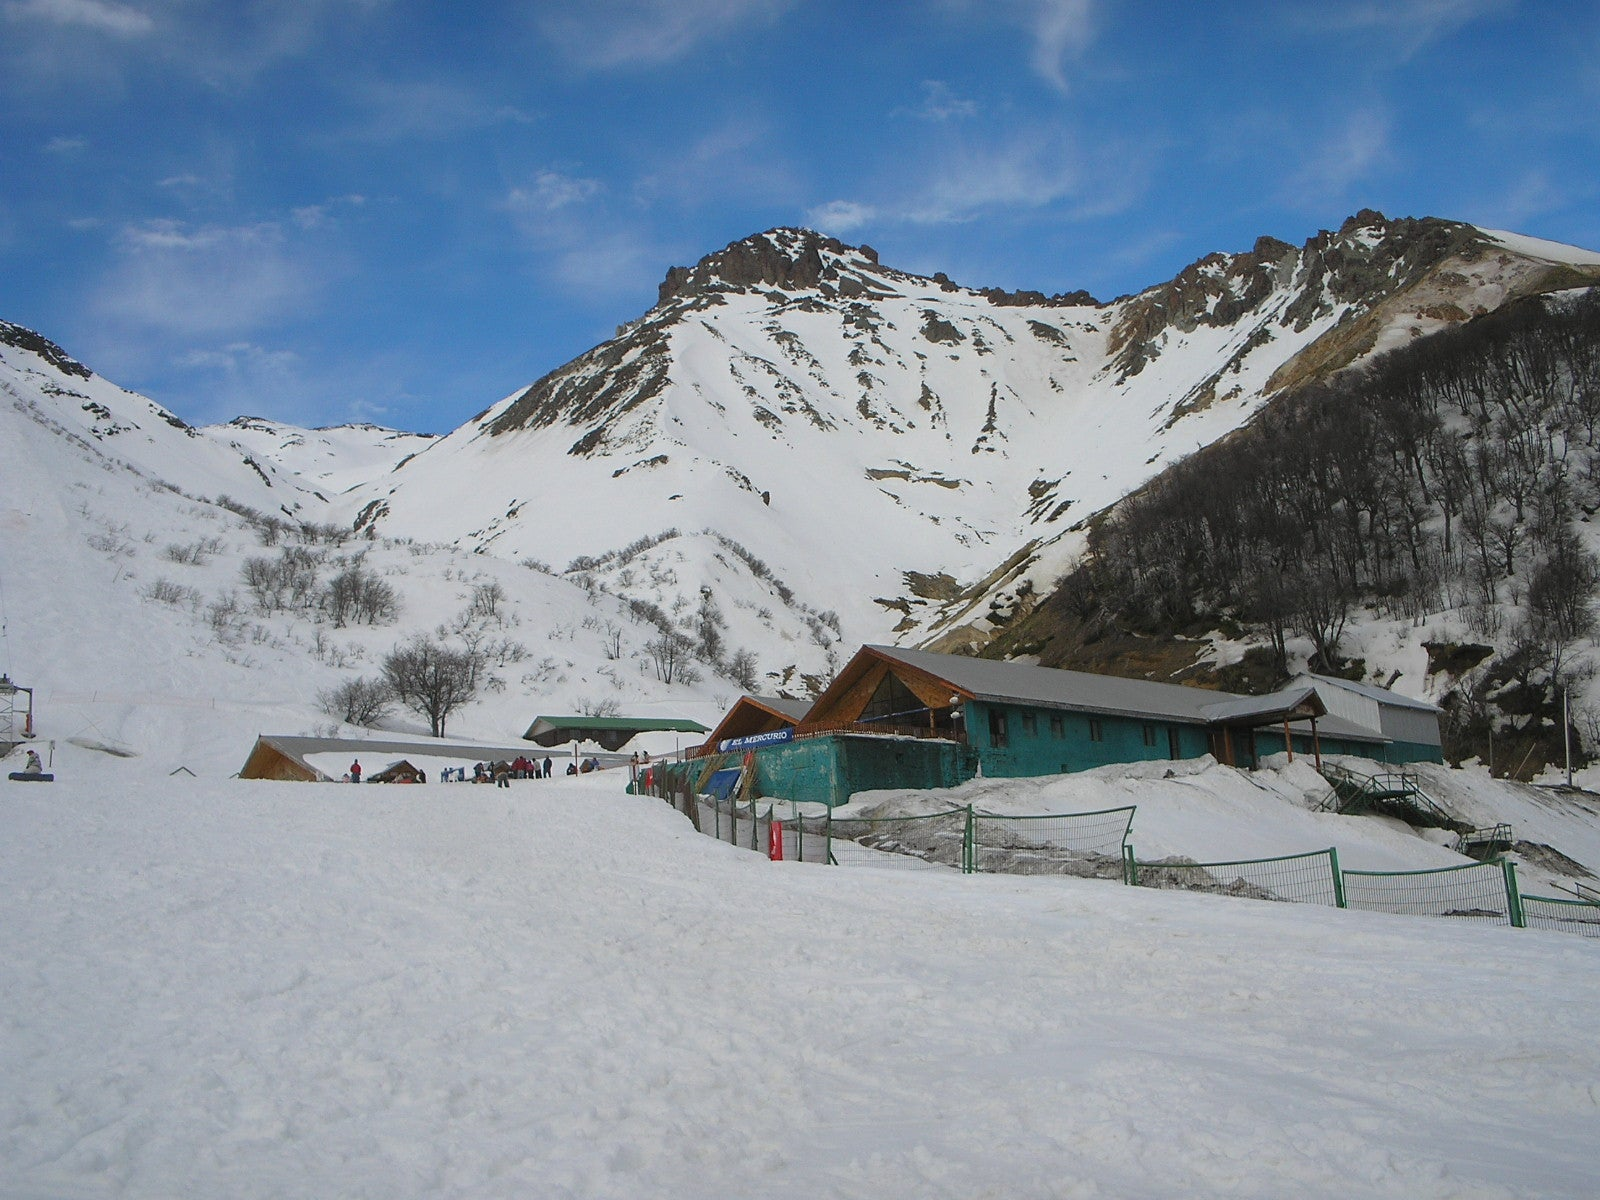 Resort en Nevados de Chillan